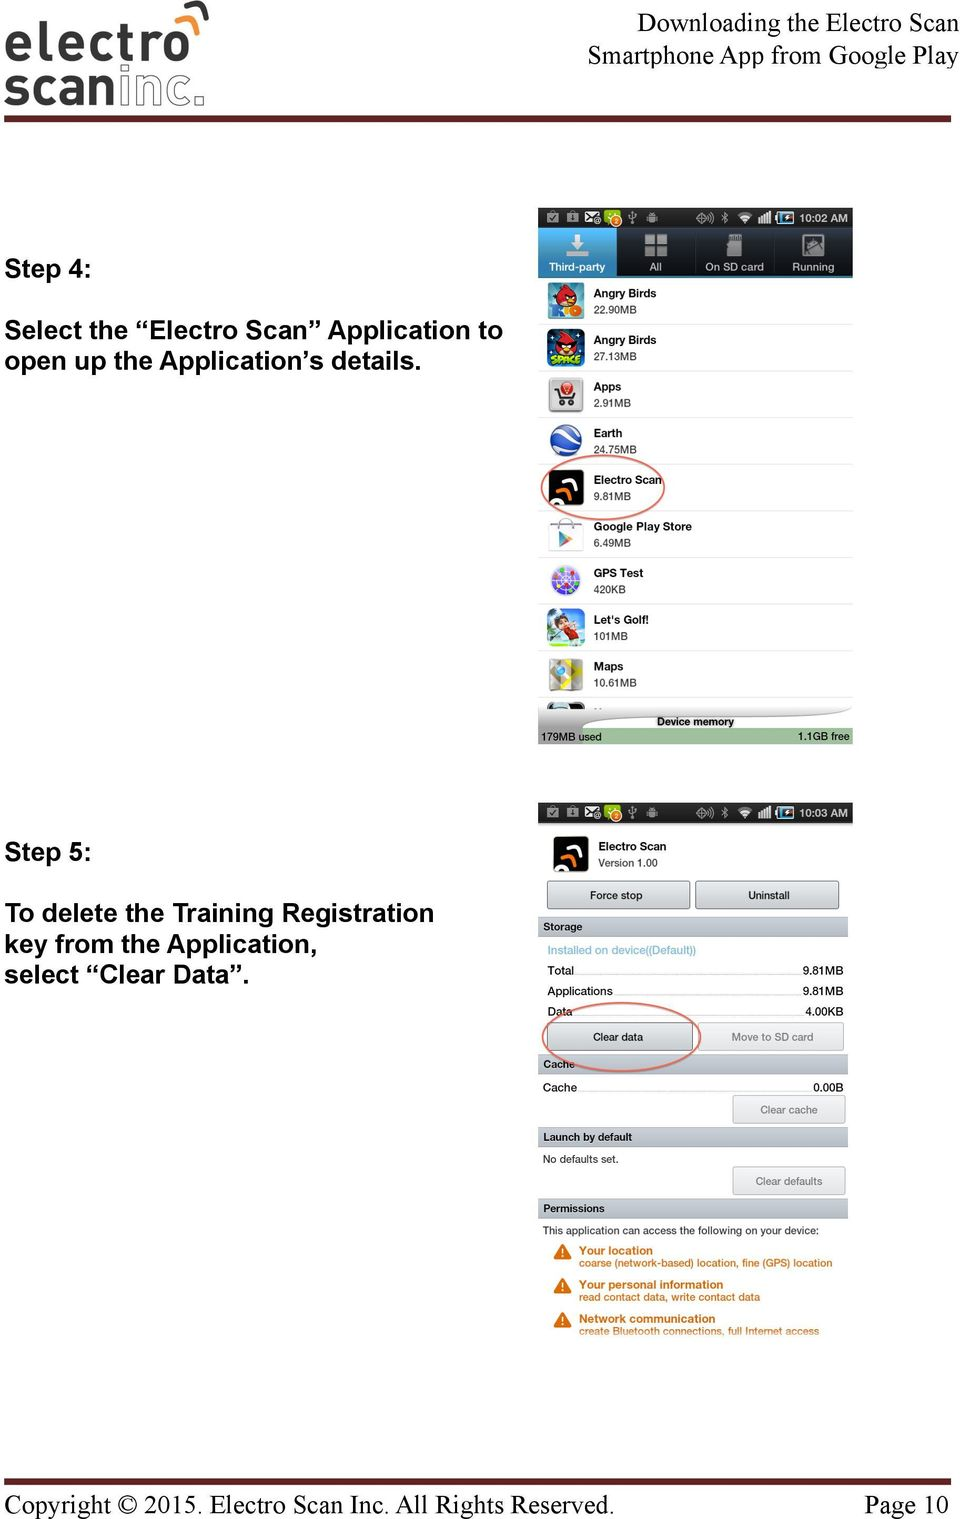 Step 5: To delete the Training Registration key from the